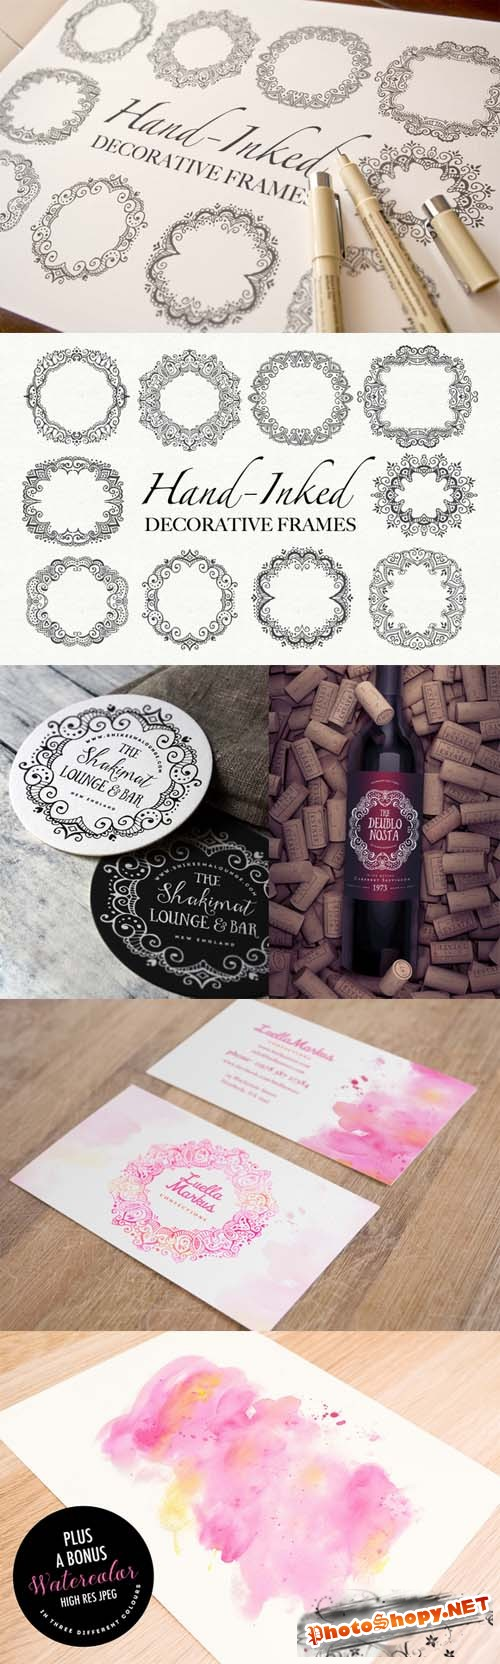 Hand-Inked Decorative Frames PSD and Vector